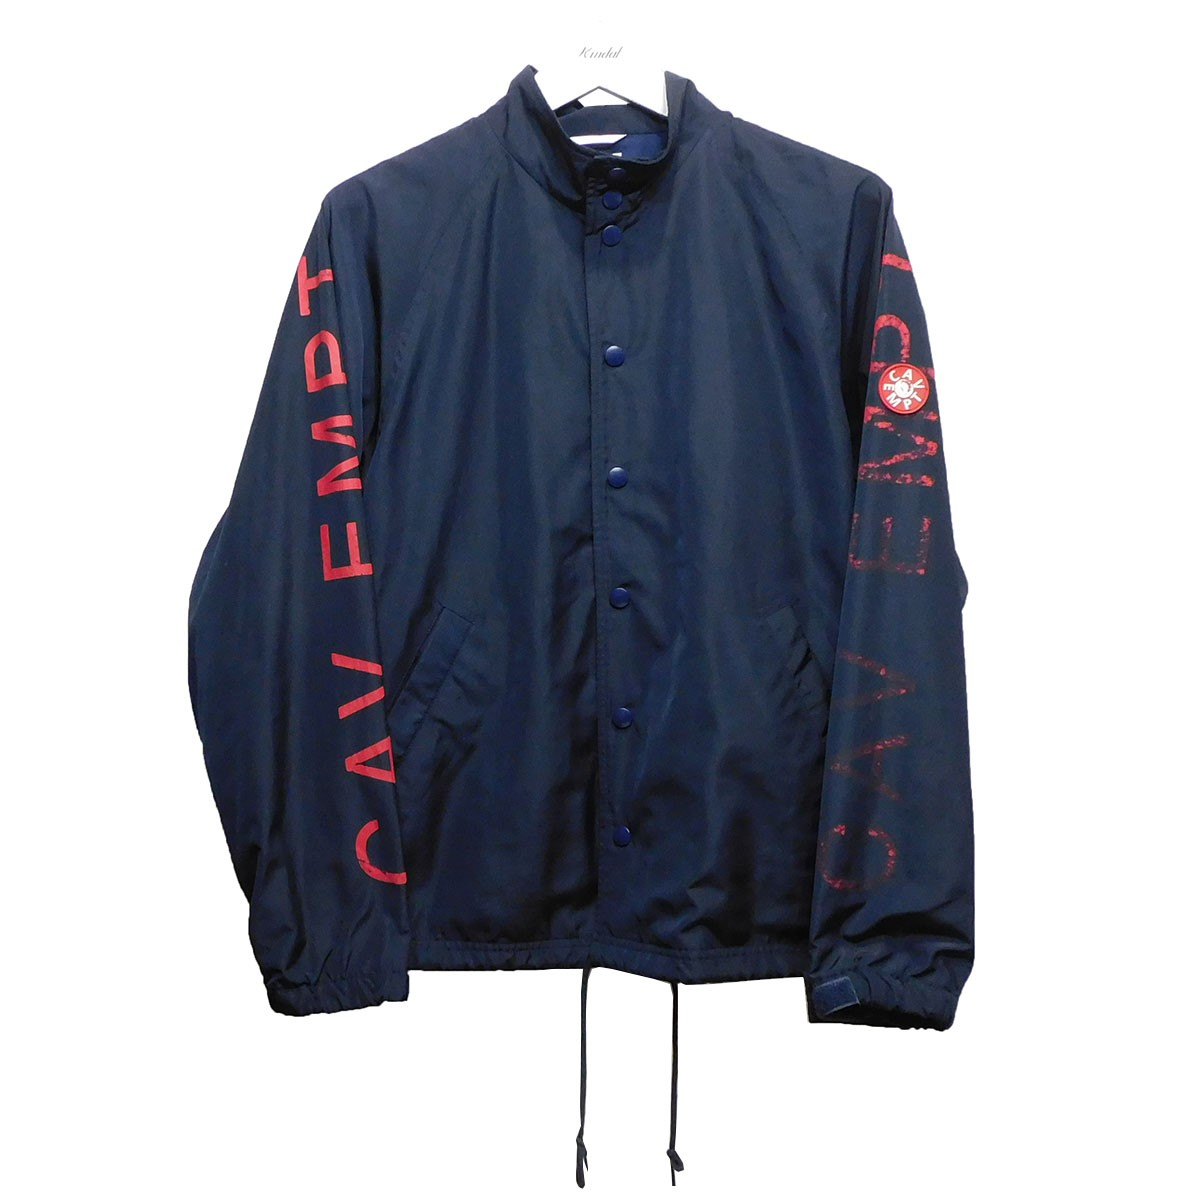 【中古】C.E 14AW 「CAV EMPT STAND COLLAR COATH JACKET」 ネイビー サイズ:S 【310720】(シーイー)